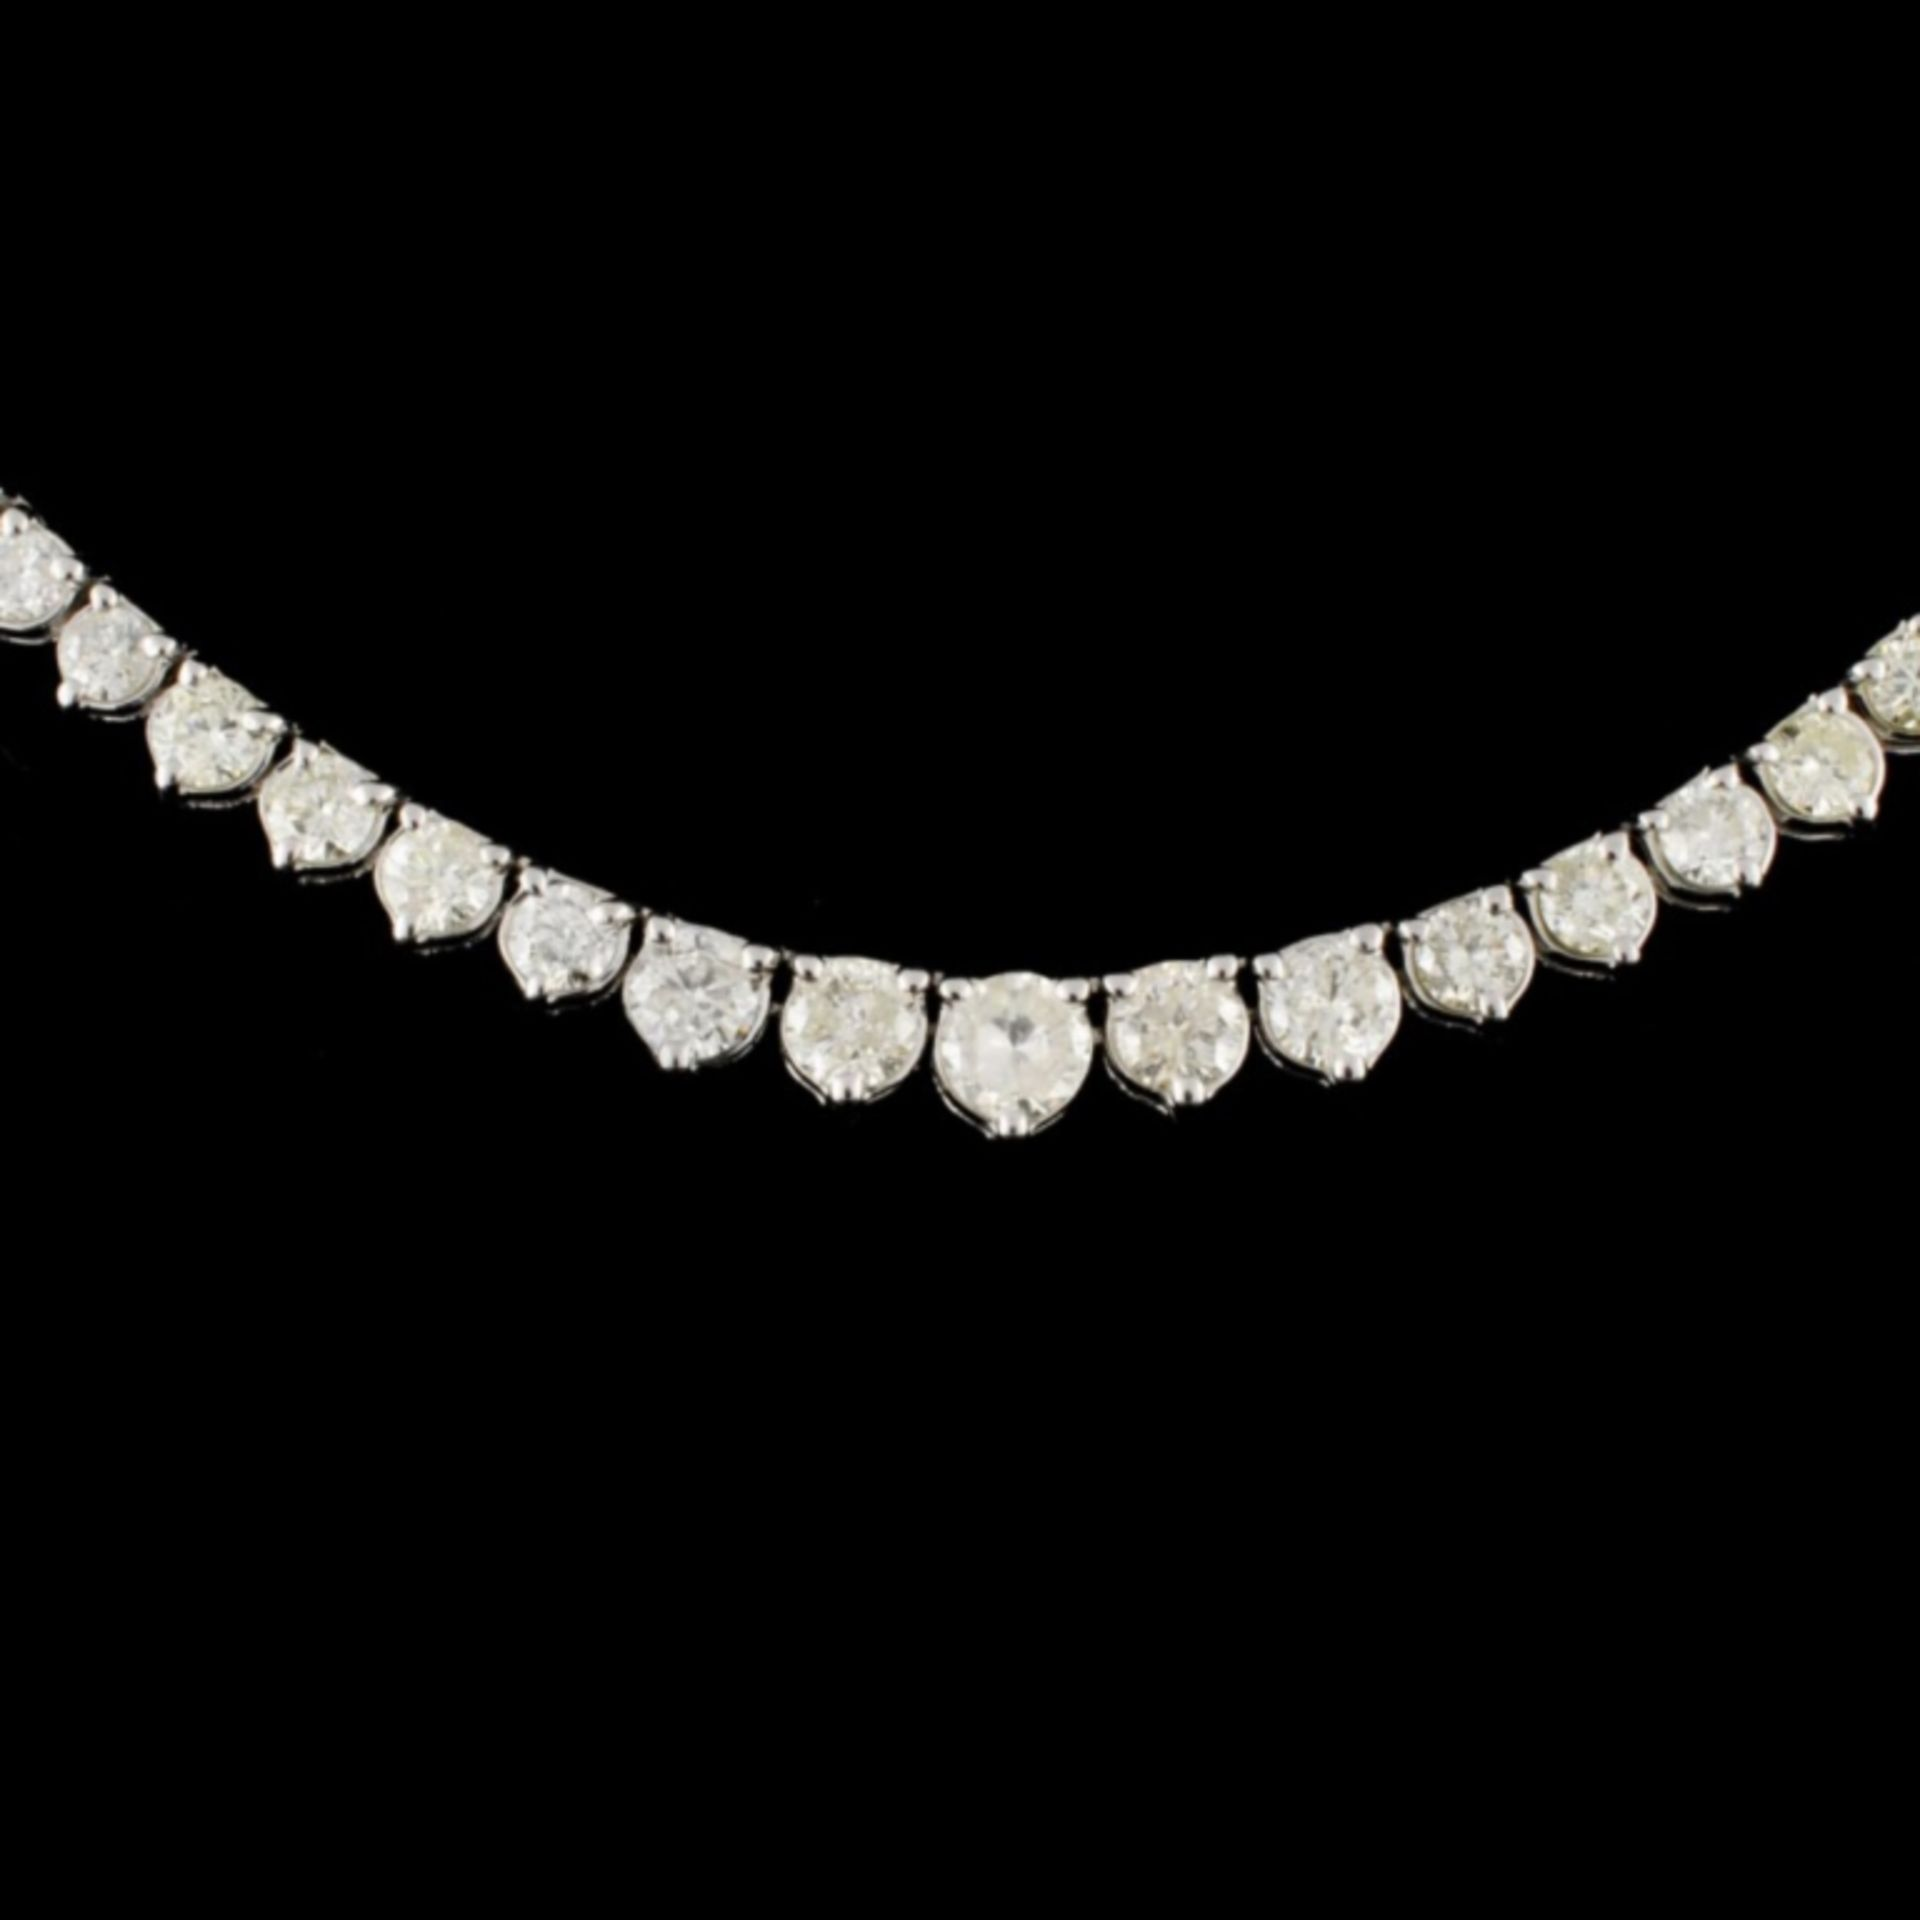 14K Gold 8.68ctw Diamond Necklace - Image 2 of 3